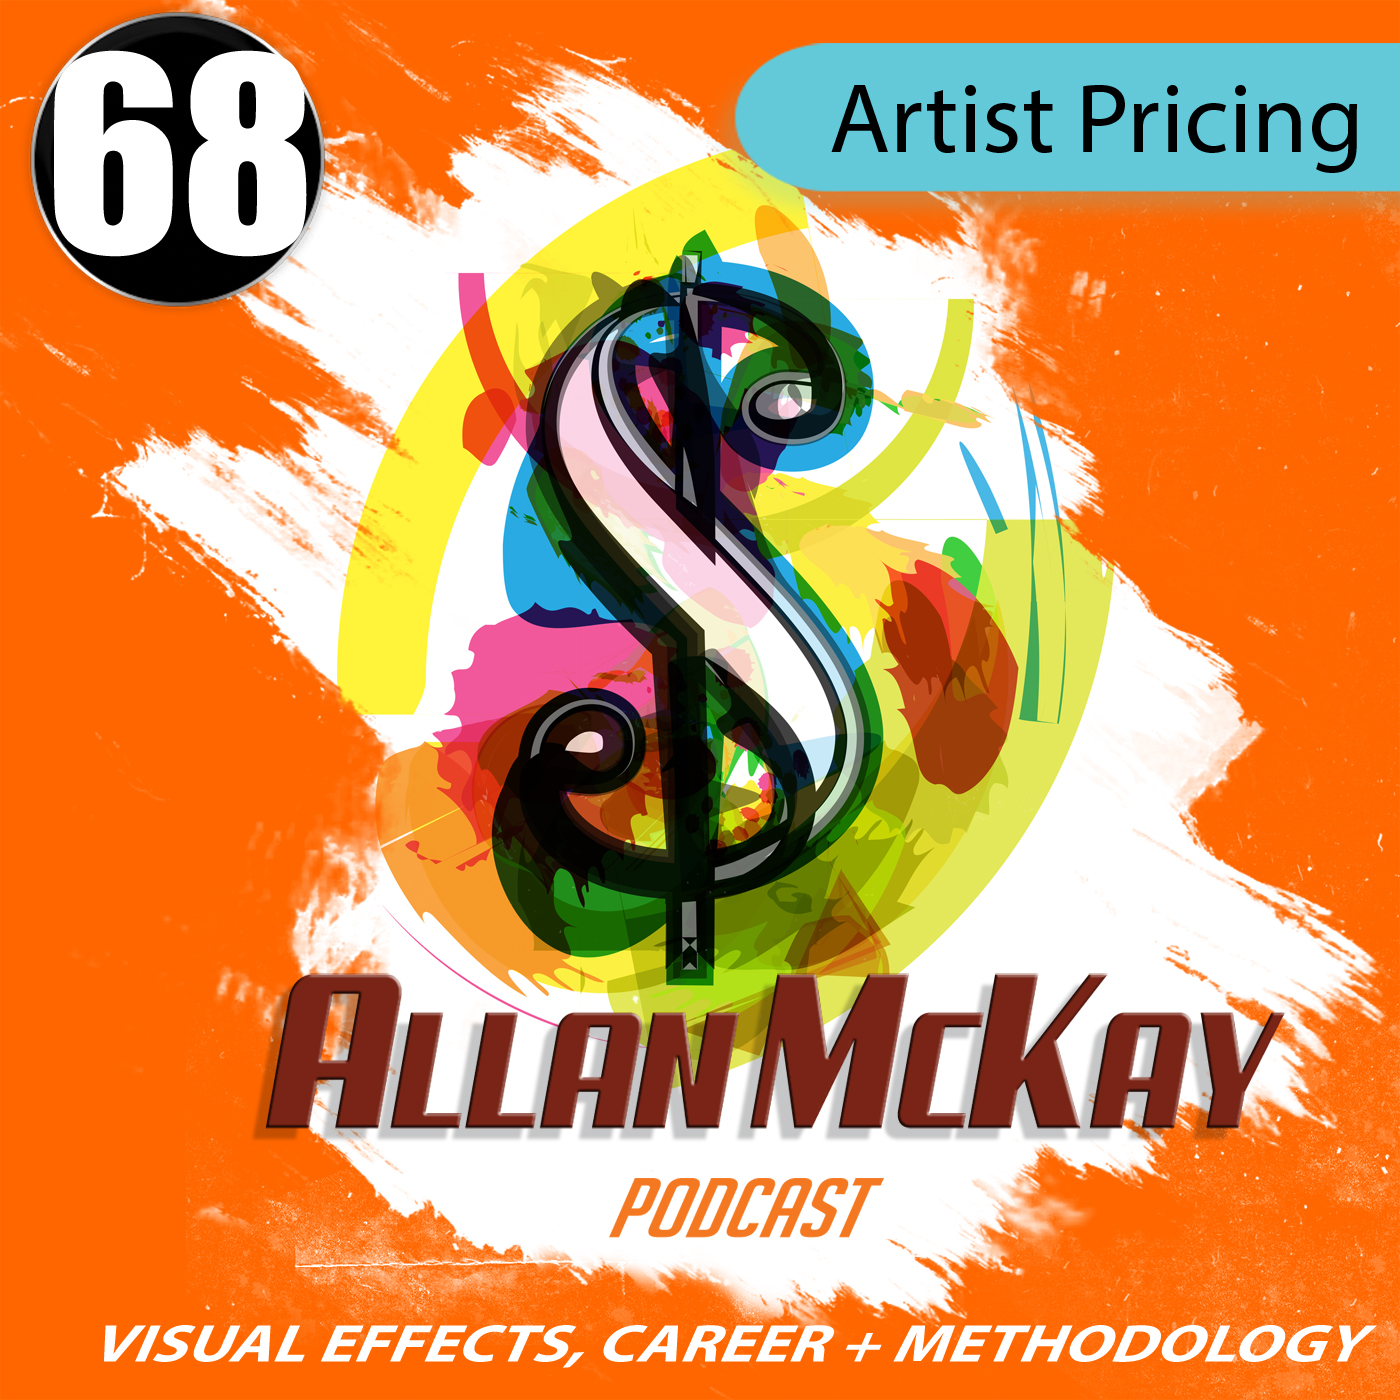 068 - Pricing Yourself as an Artist